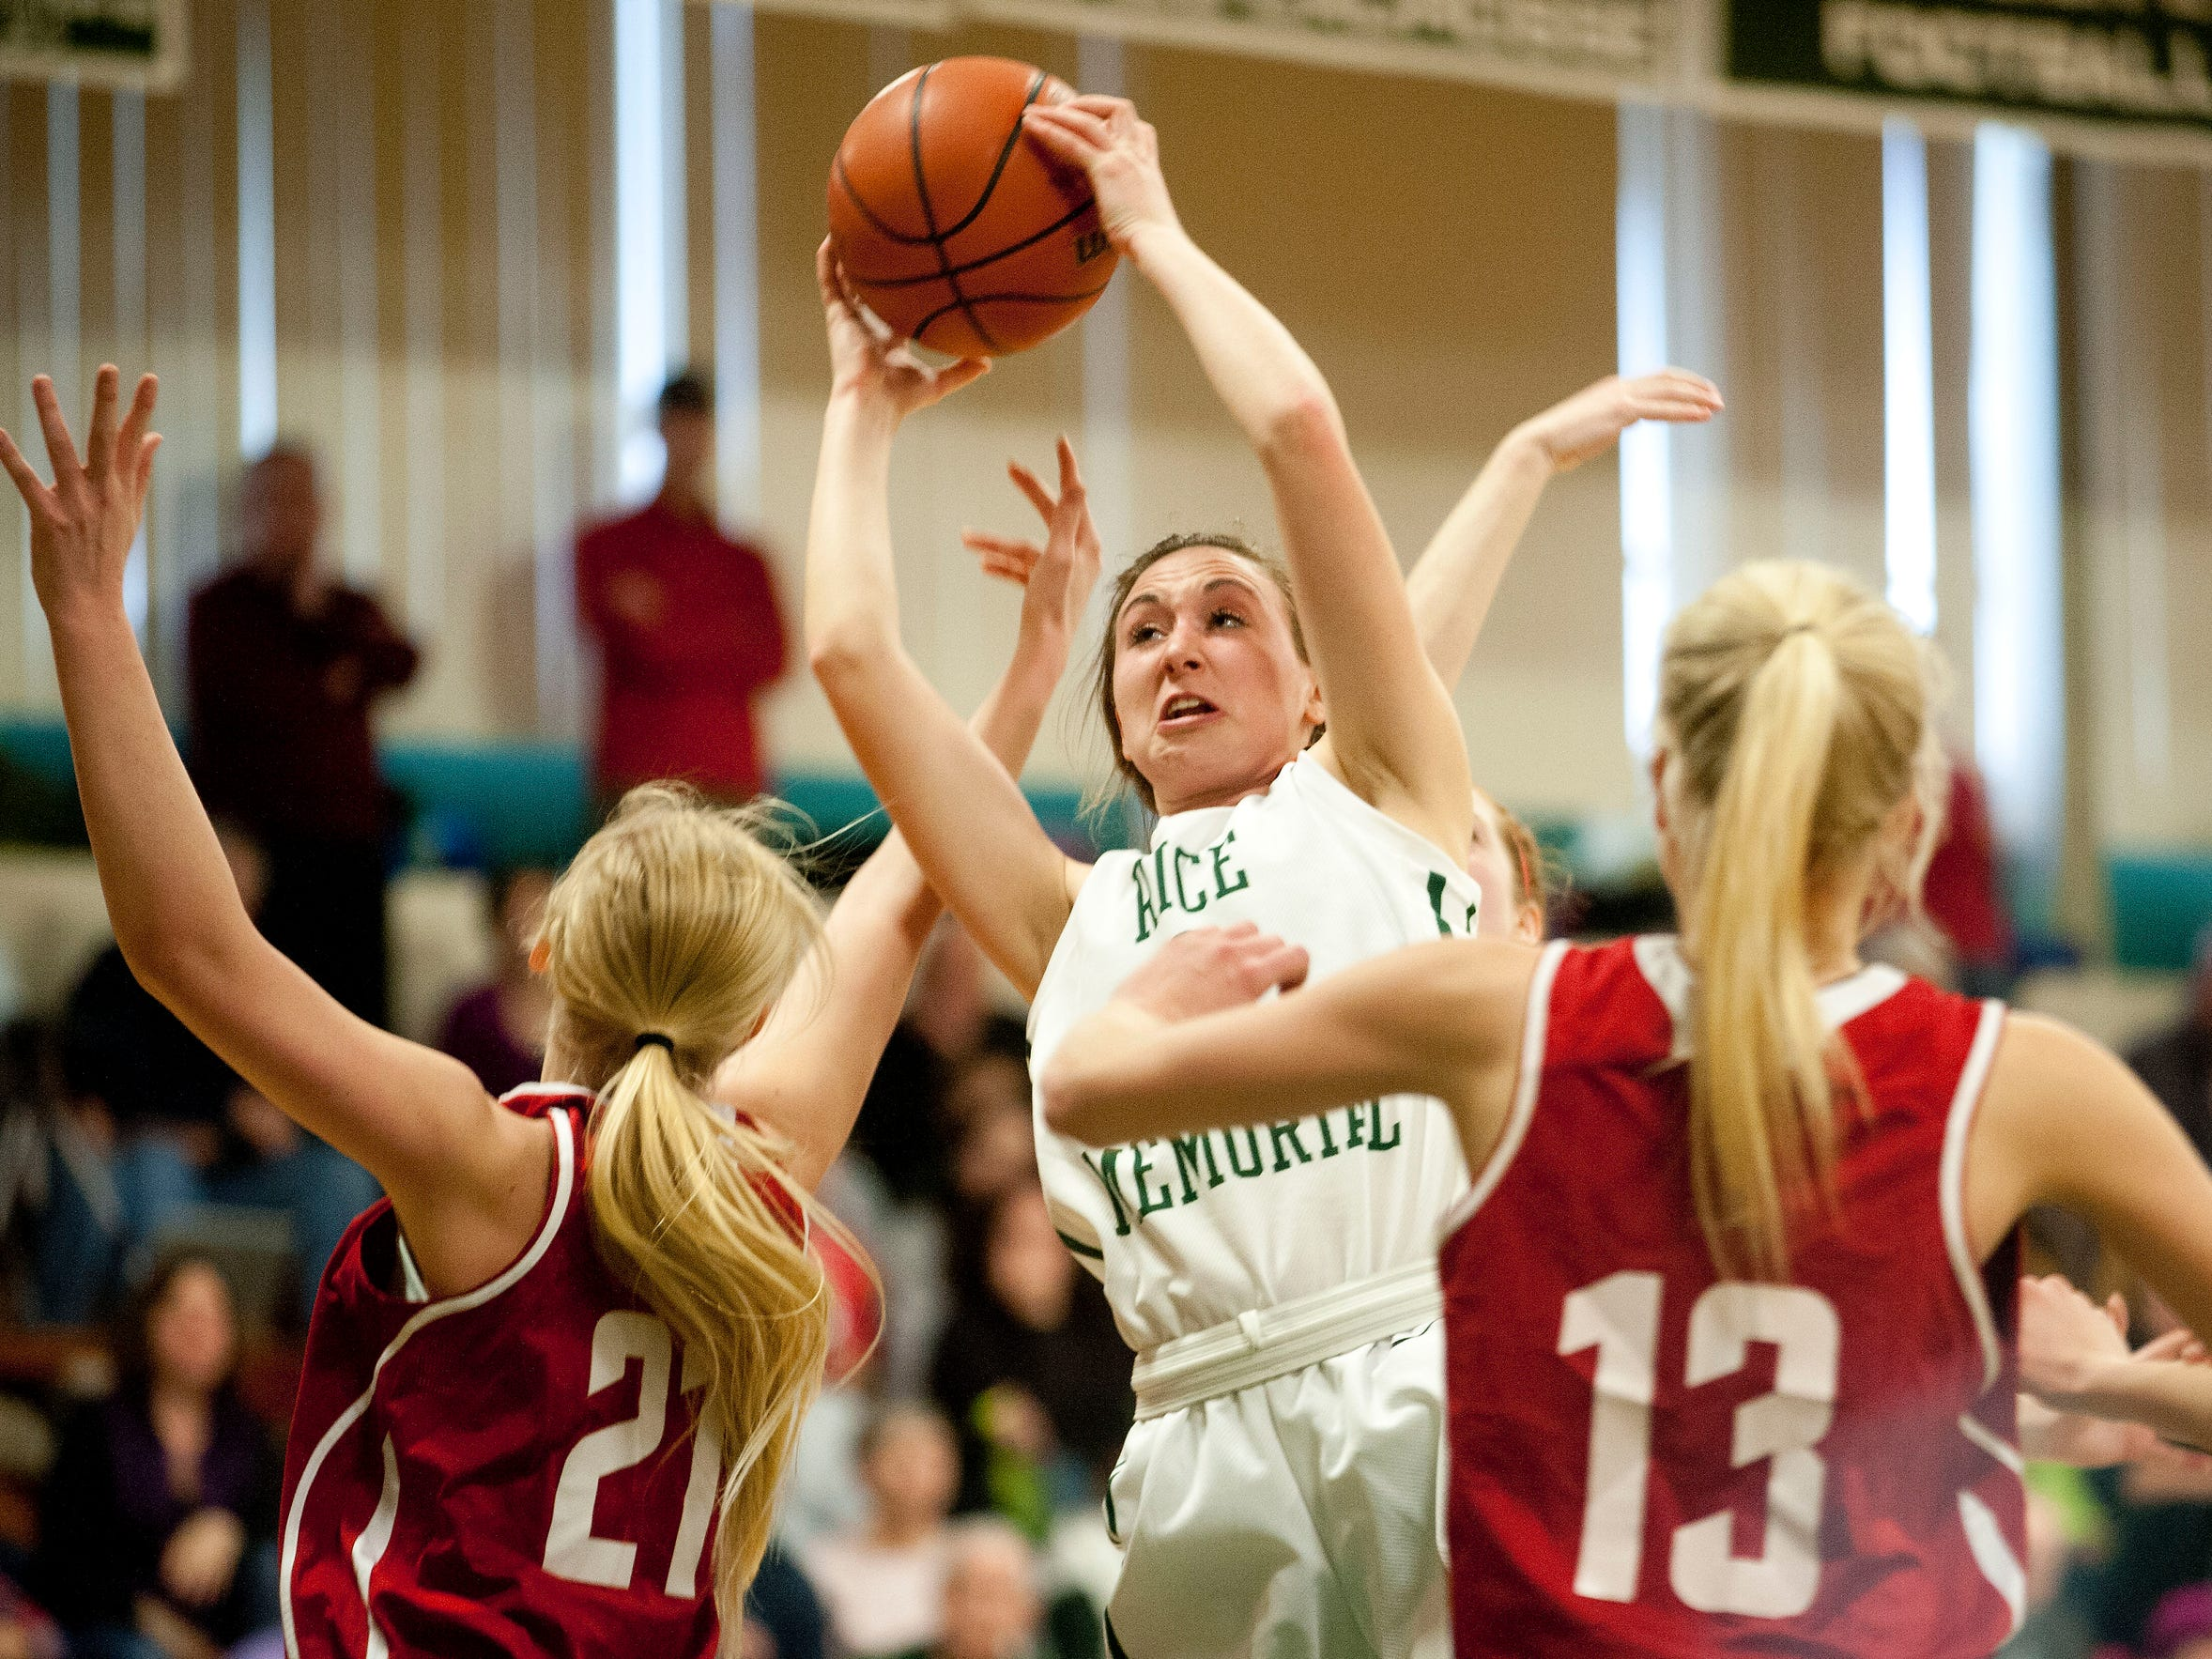 Rice's Carolyn Snell (1) grabs the rebound during a